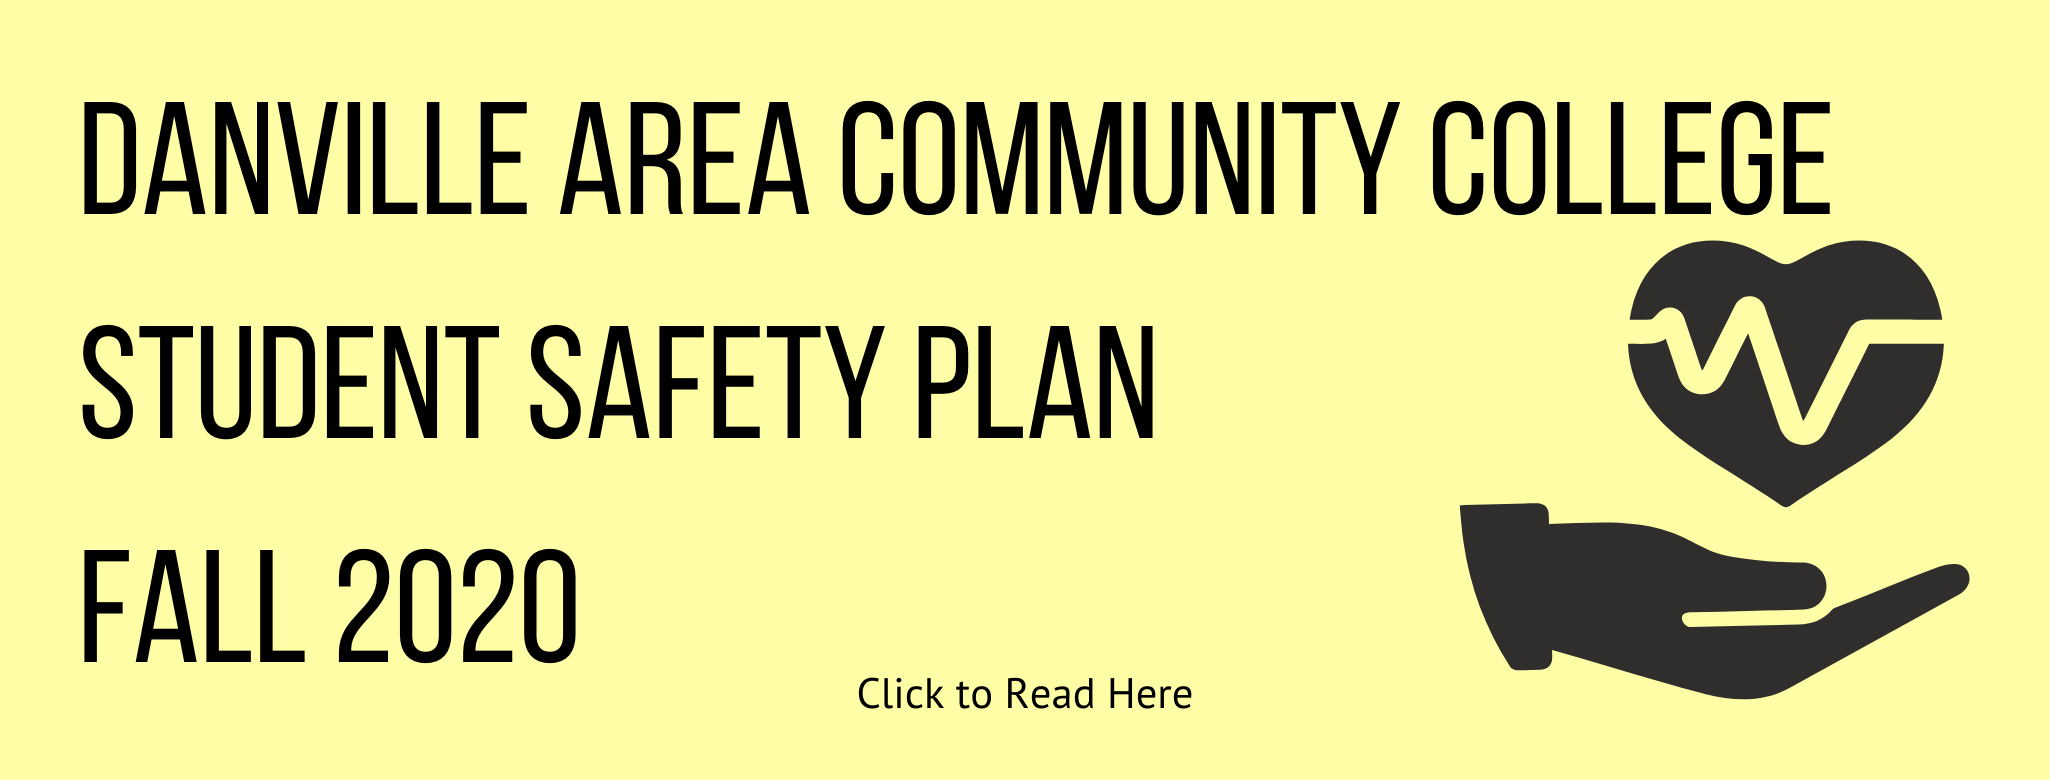 DACC Student Safety Plan Fall 2020